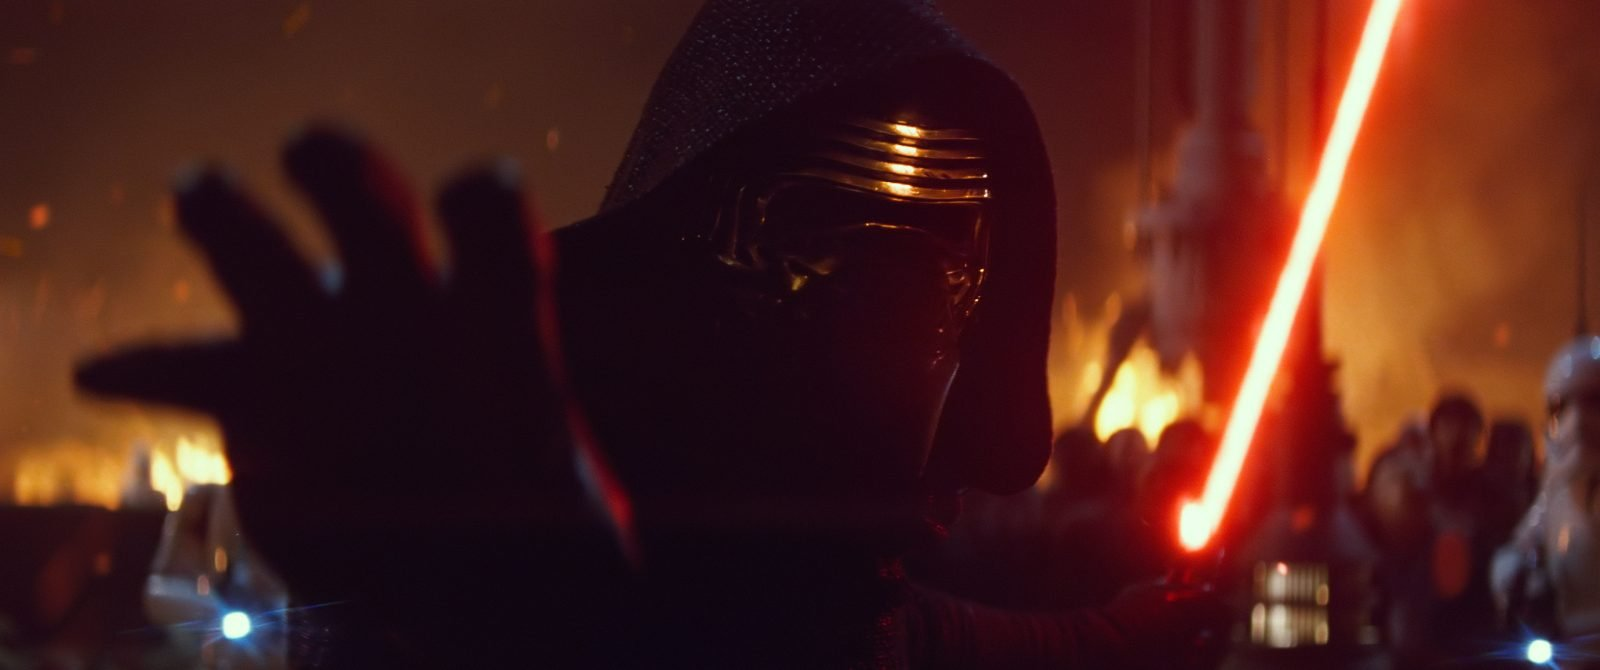 Star Wars VII The Force Awakens 29 - Kylo Ren attacks with Force